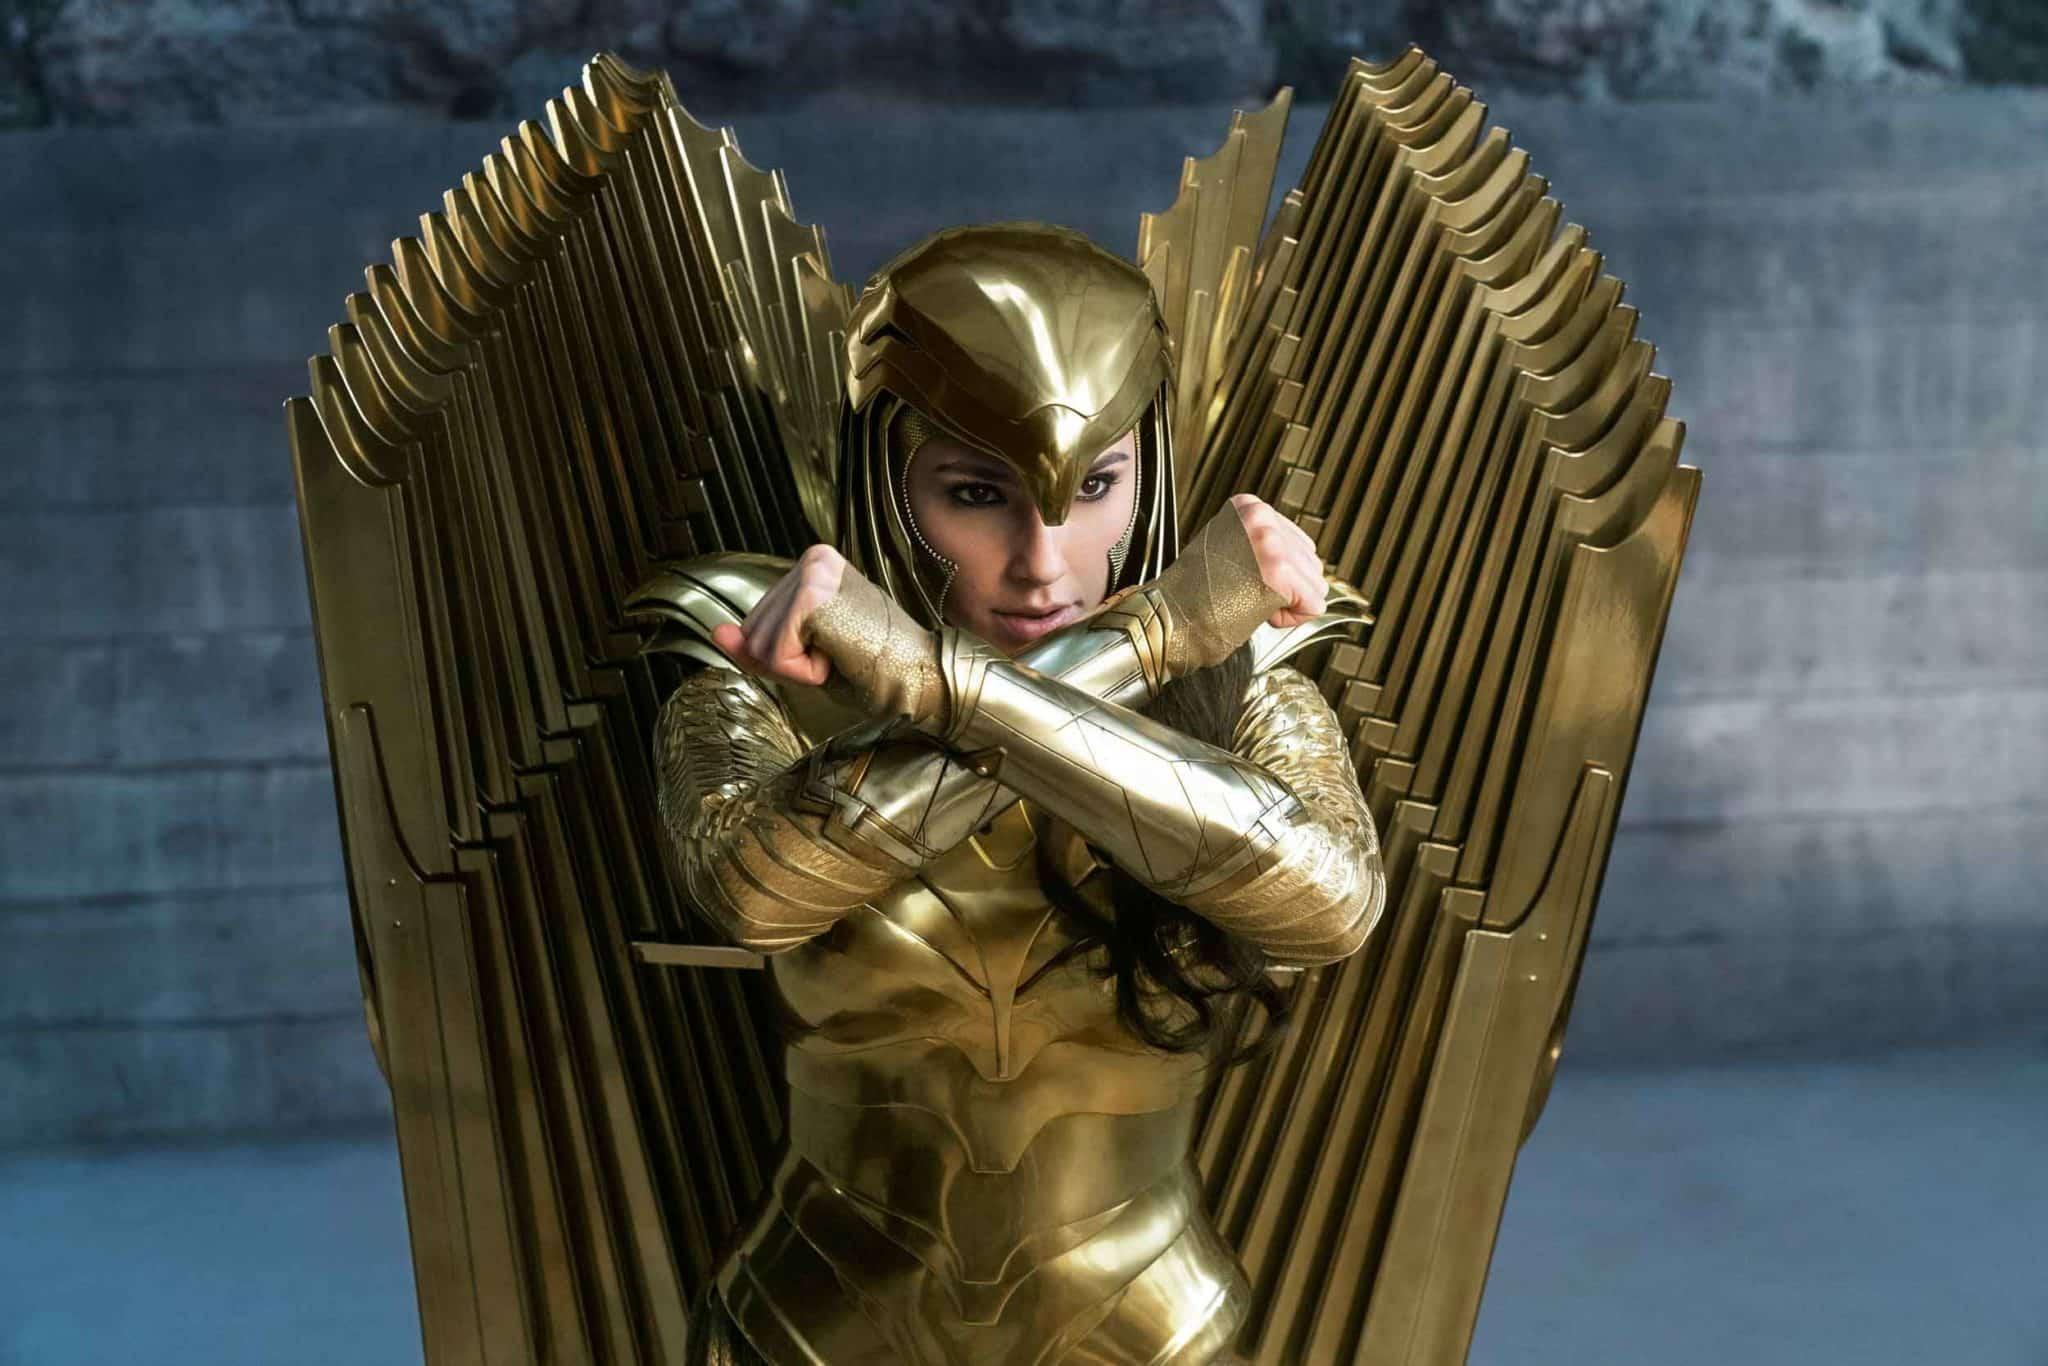 Wonder Woman con la armadura Golden Eagle